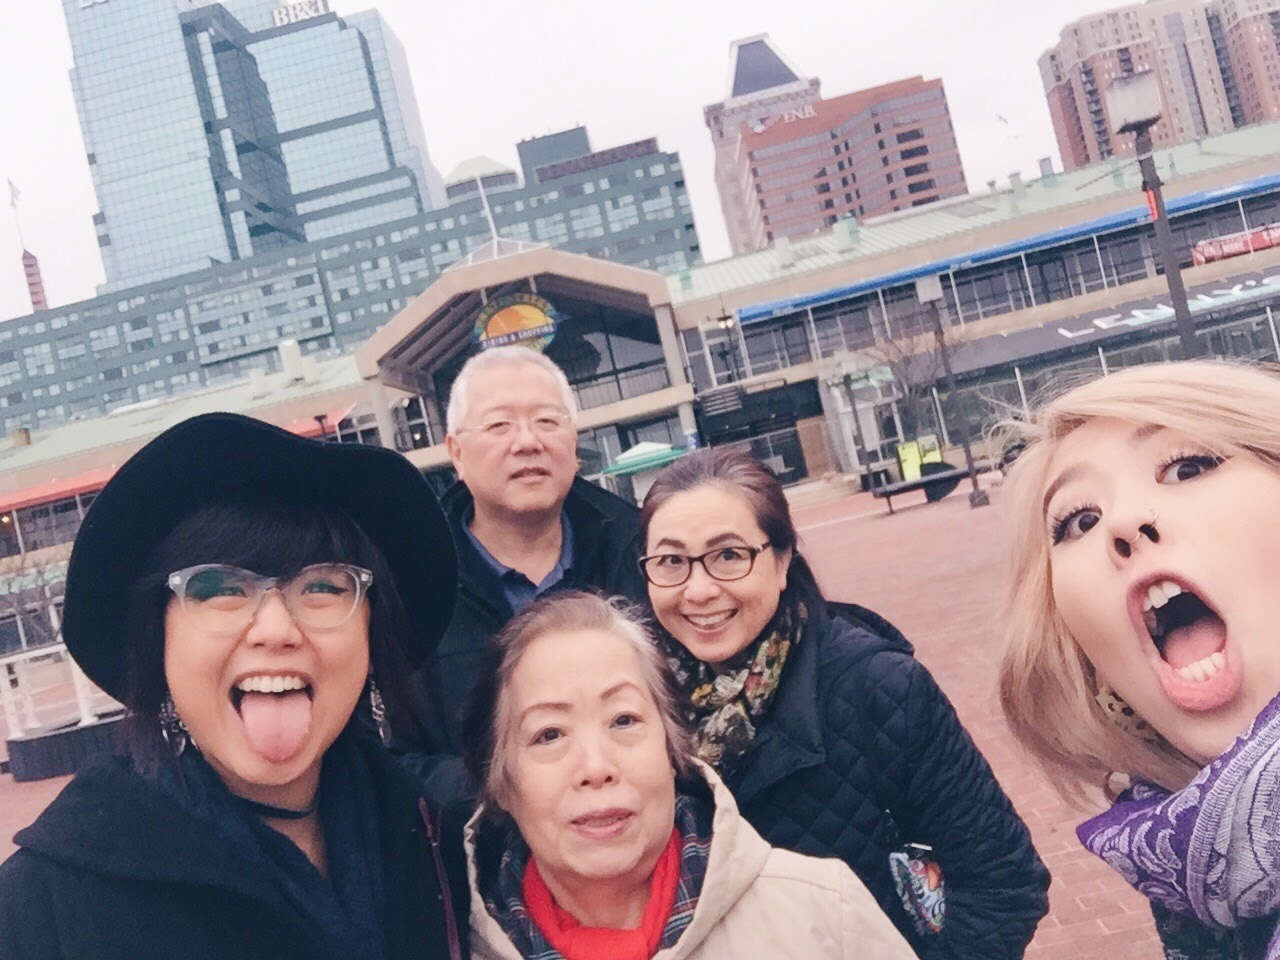 Jun's paternal grandmother and her family in a selfie.